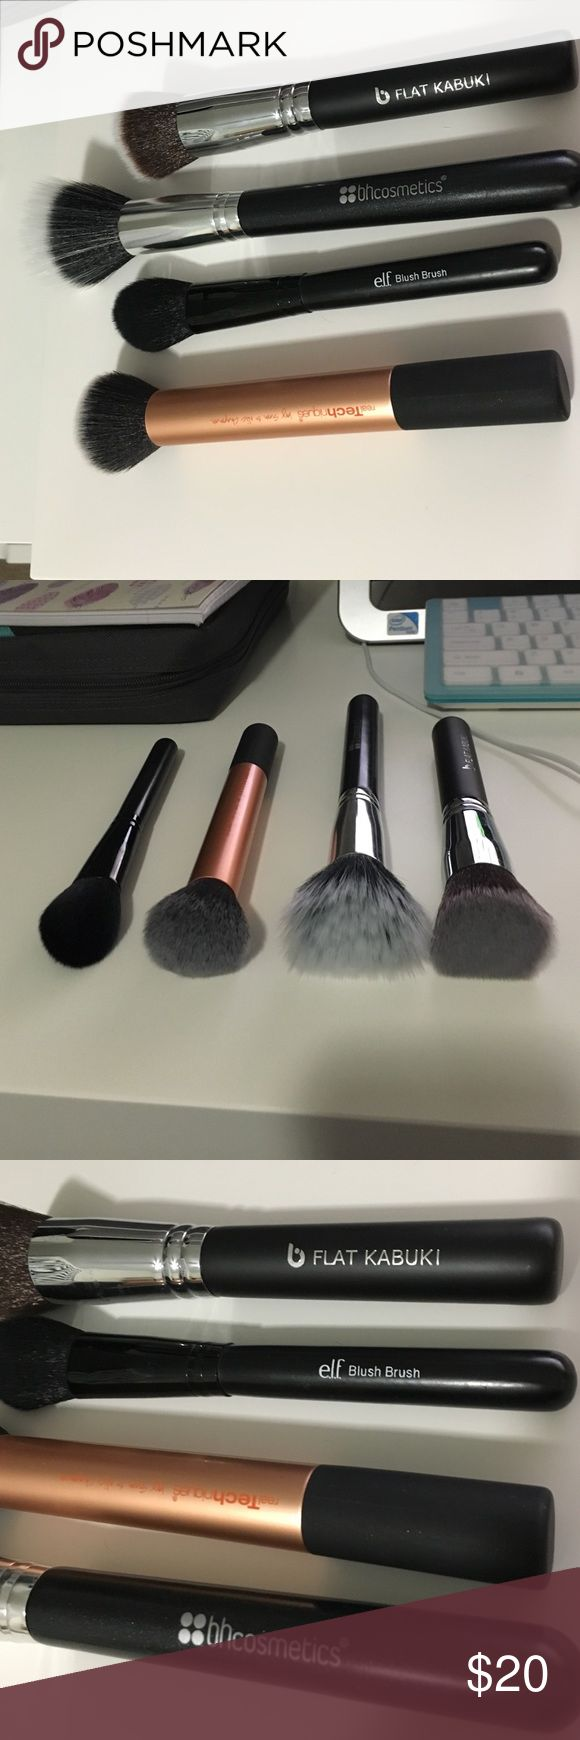 Makeup brushes Makeup brushes! All are brand new, never used, and have been cleaned (dawn and hot water). Real techniques buffing brush, bh cosmetics duo fiber brush (great for blending out blush and bronzer), elf  blush brush (I have a few of these, use it to set my under eyes) and B flat kabuki brush (great for bronzers) Real techniques Makeup Brushes & Tools